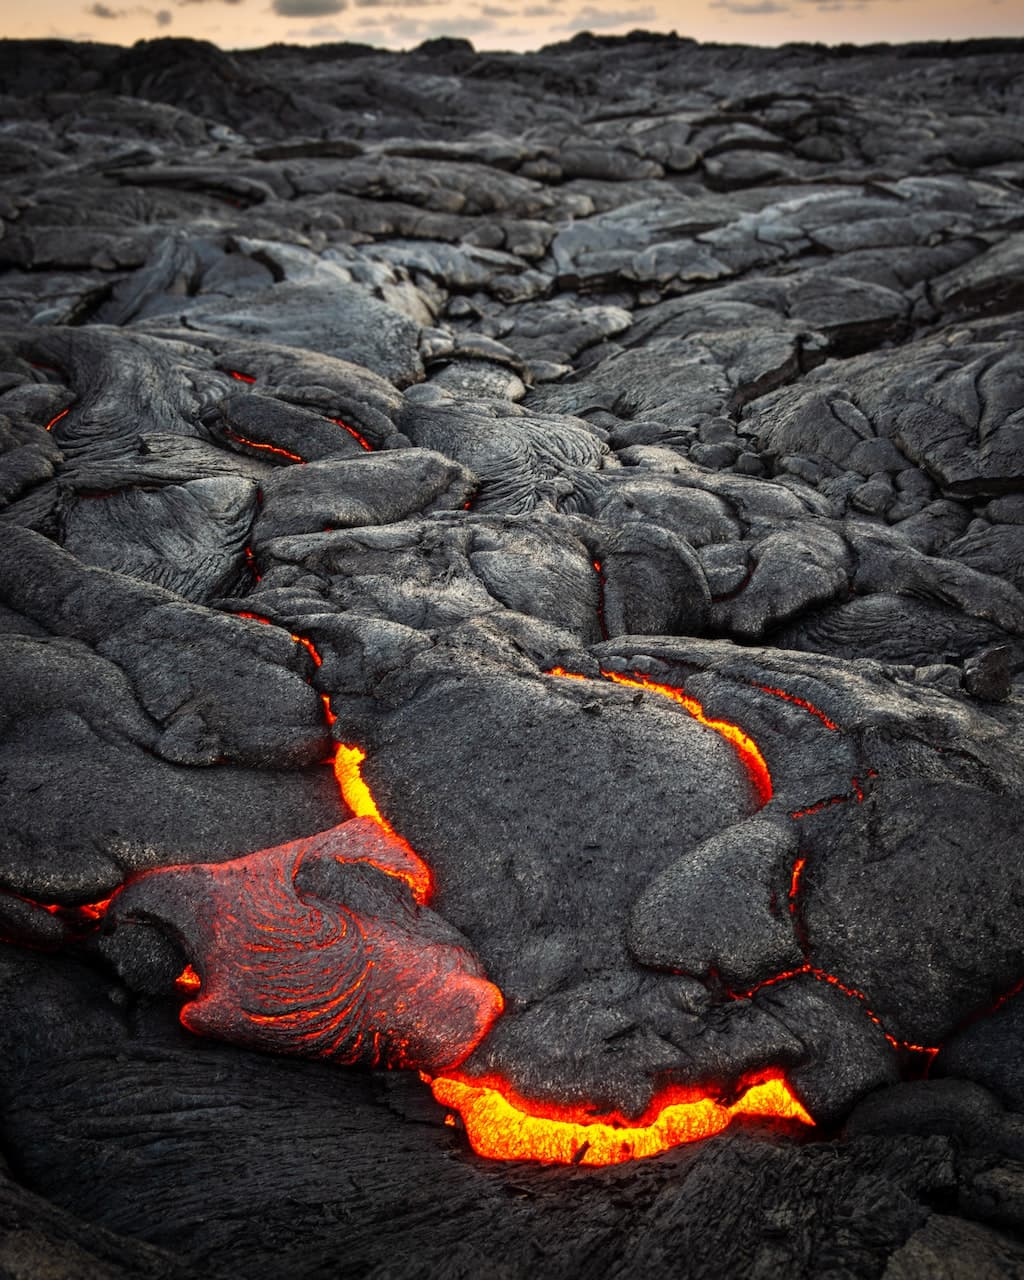 Hawaii Volcanoes National Park, United States